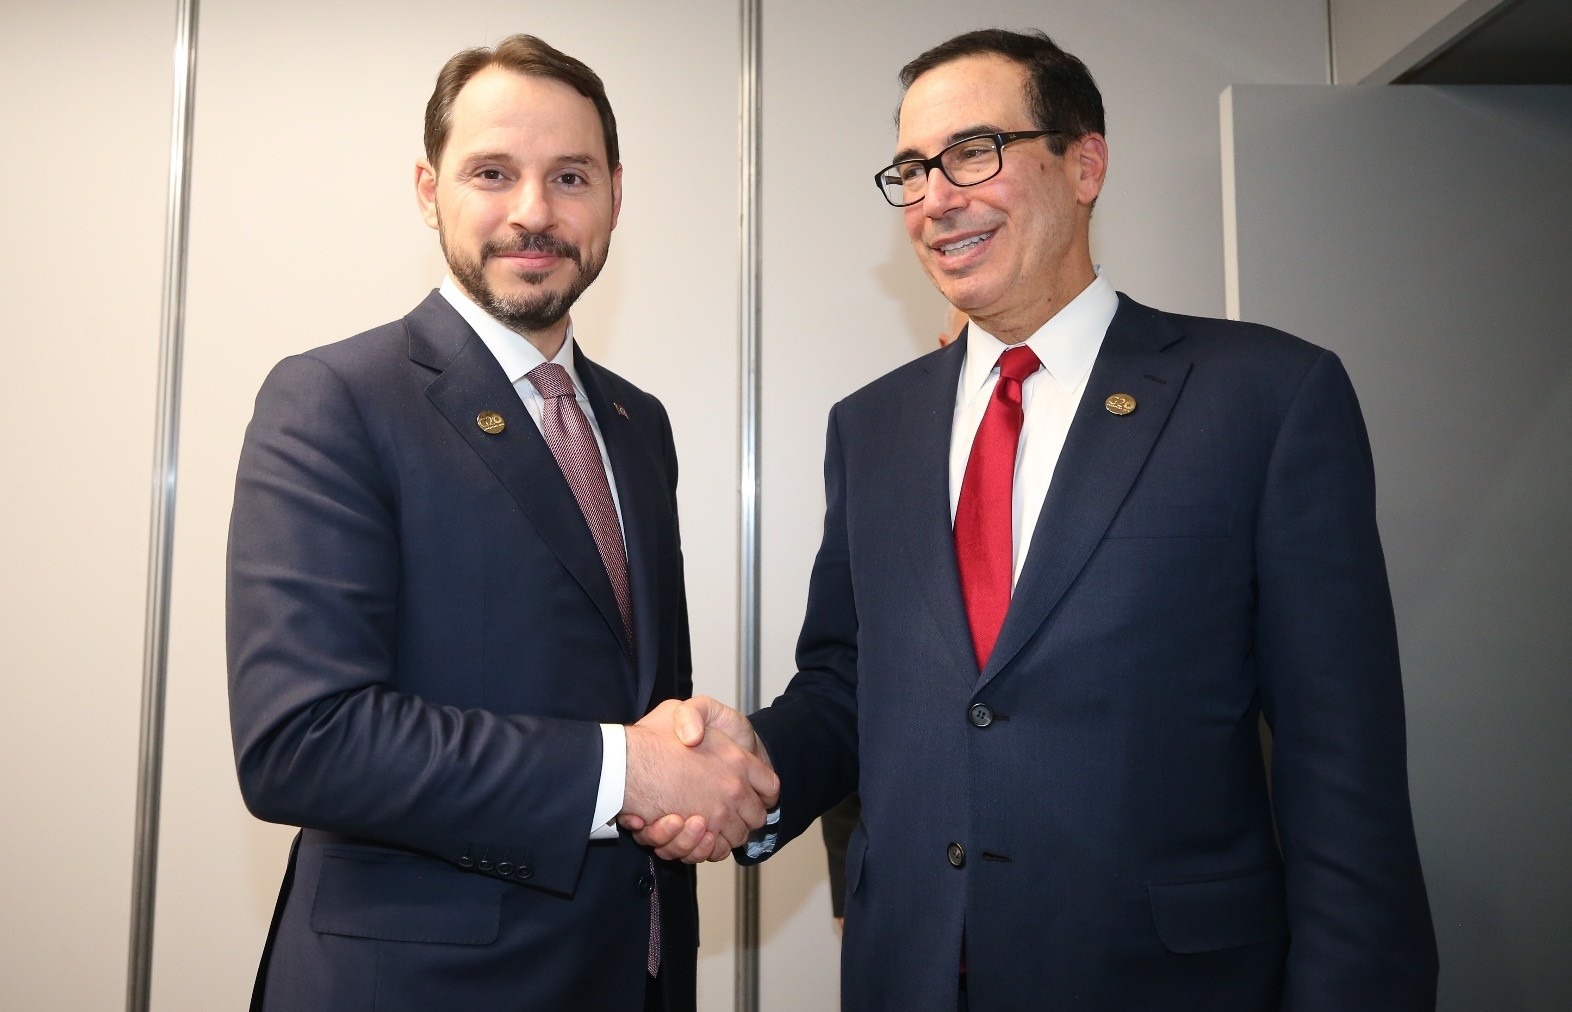 Treasury and Finance Minister Berat Albayrak (L) meets with U.S. Secretary of Treasury Steven Munchin on the sidelines of the G20 Meeting of Finance Ministers in Buenos Aires, Argentina, July 21, 2018.